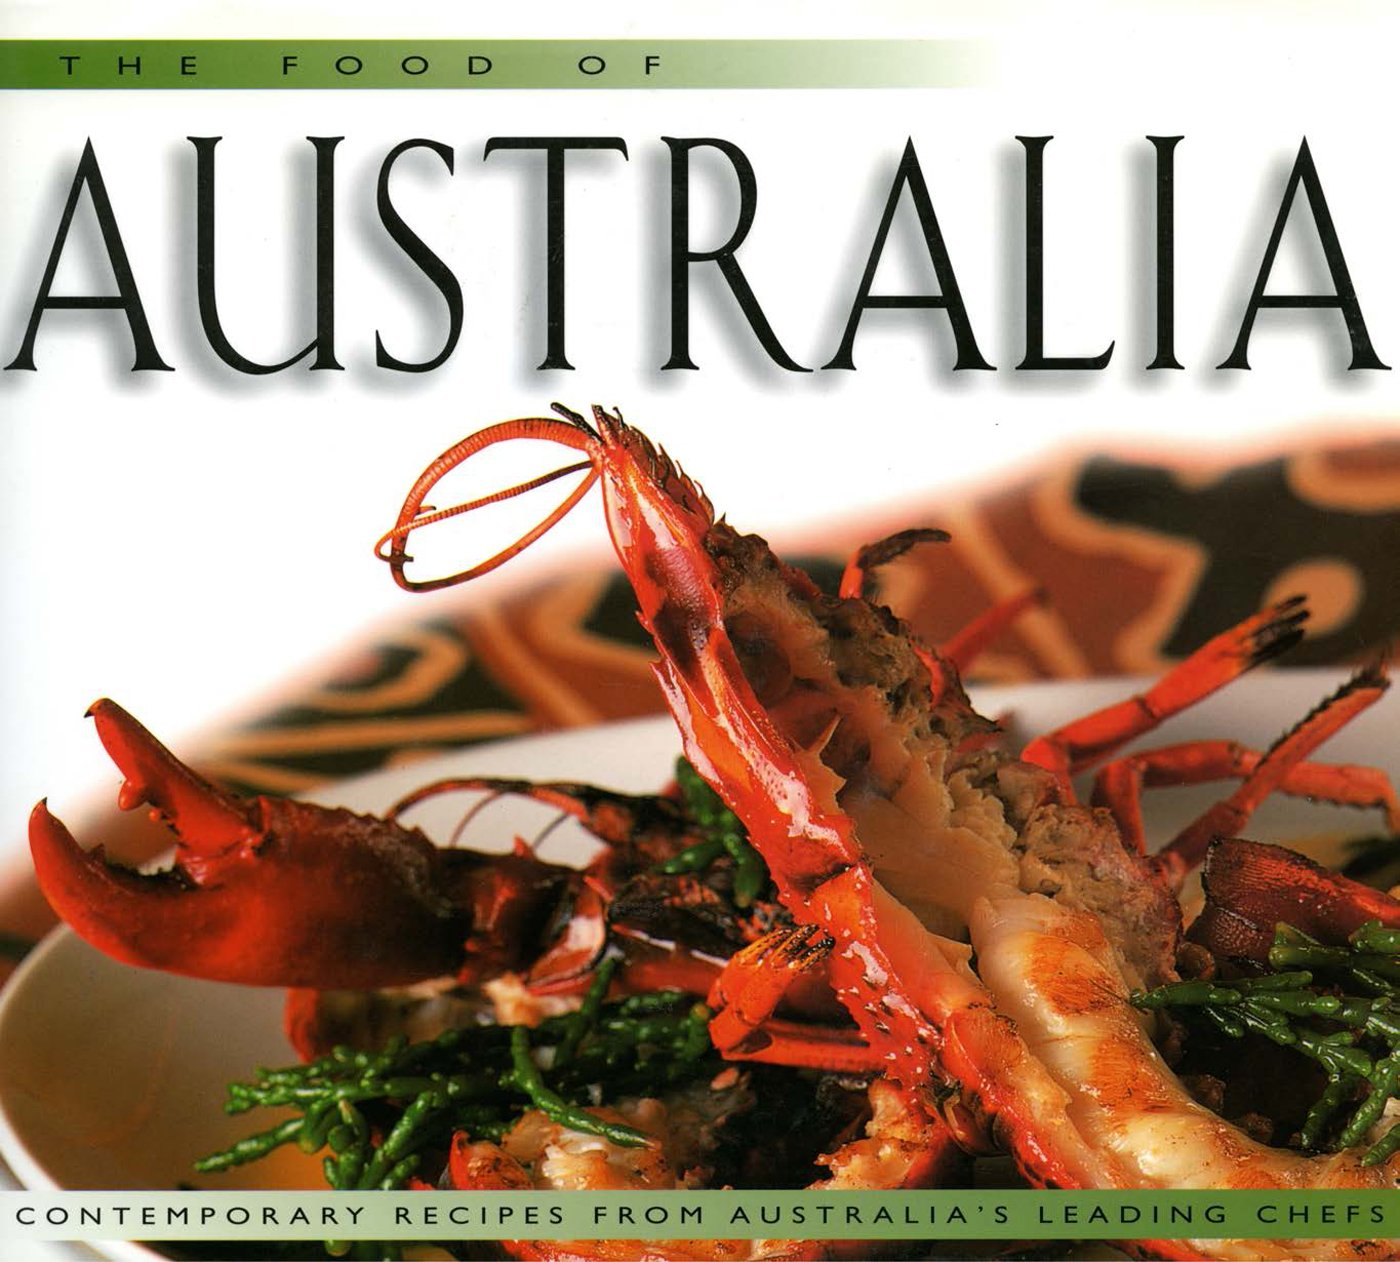 Food Of Australia  H   Contemporary Recipes From Australia's Leading Chefs  Food Of The World Cookbooks   English Edition